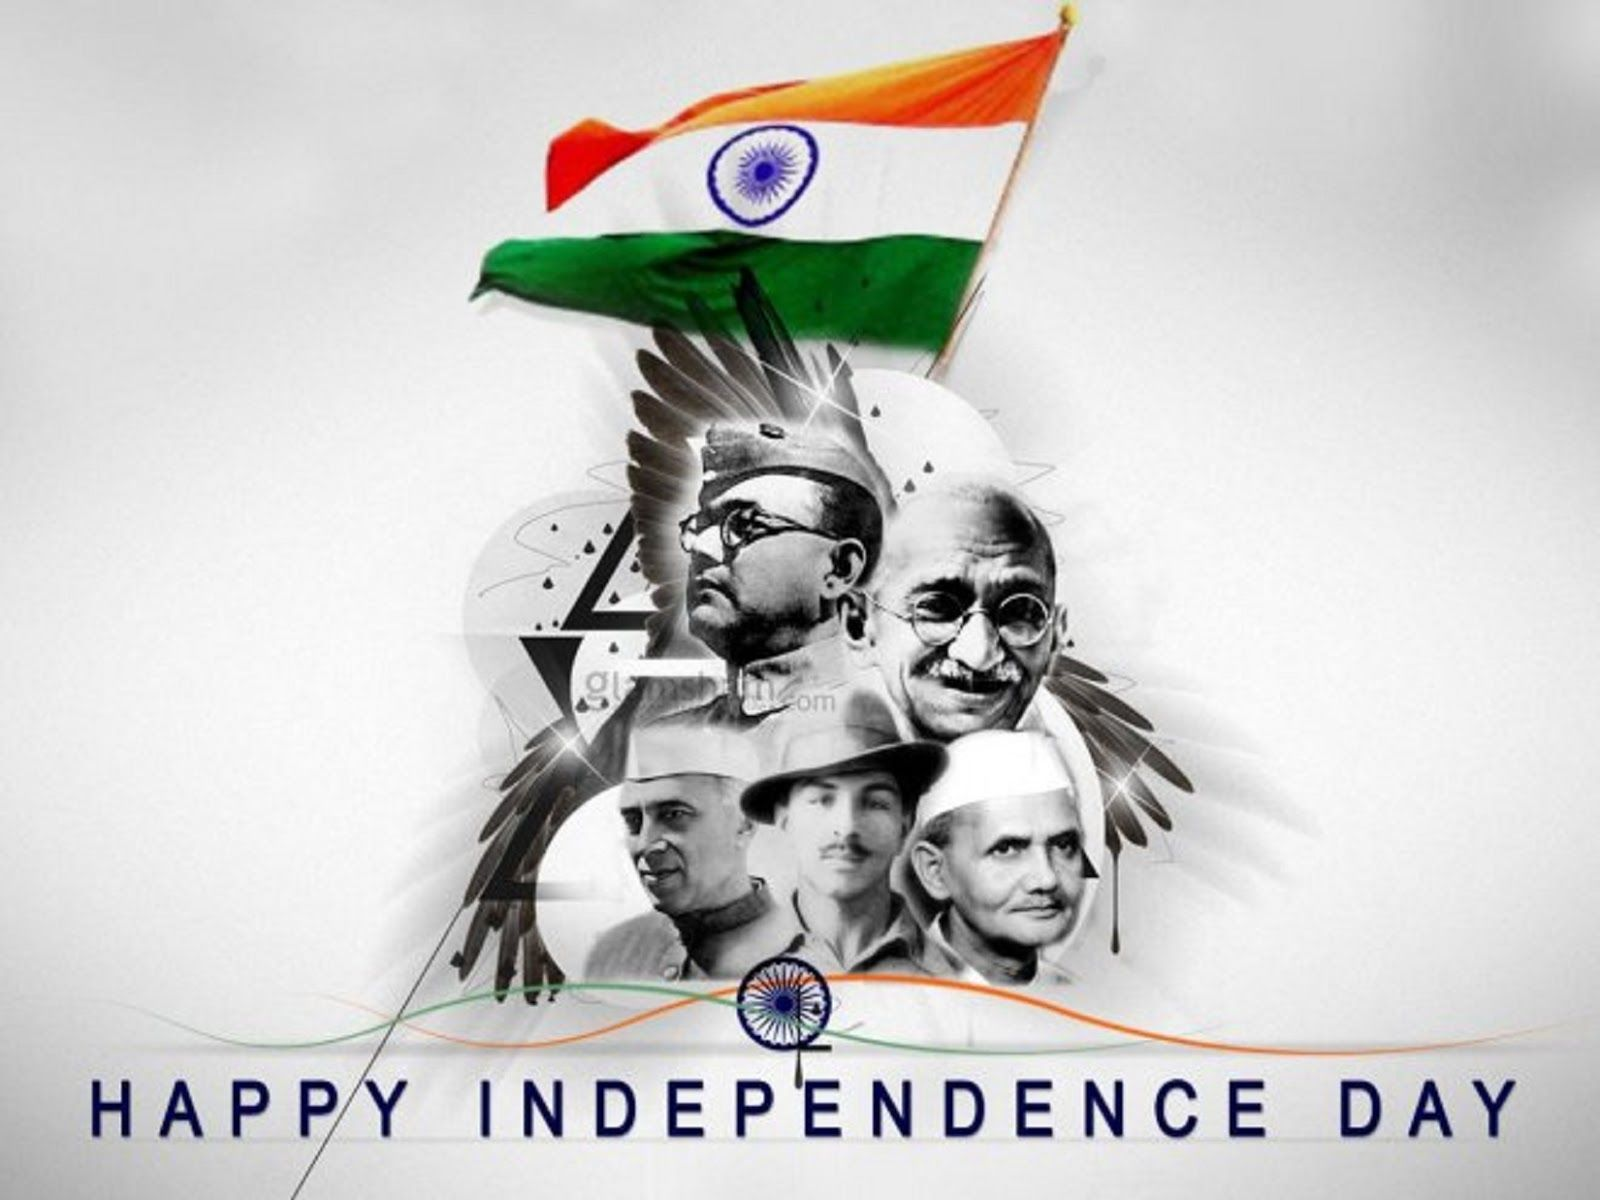 Independence Day 3d Wallpapers U2013 Free Wallpaper Download